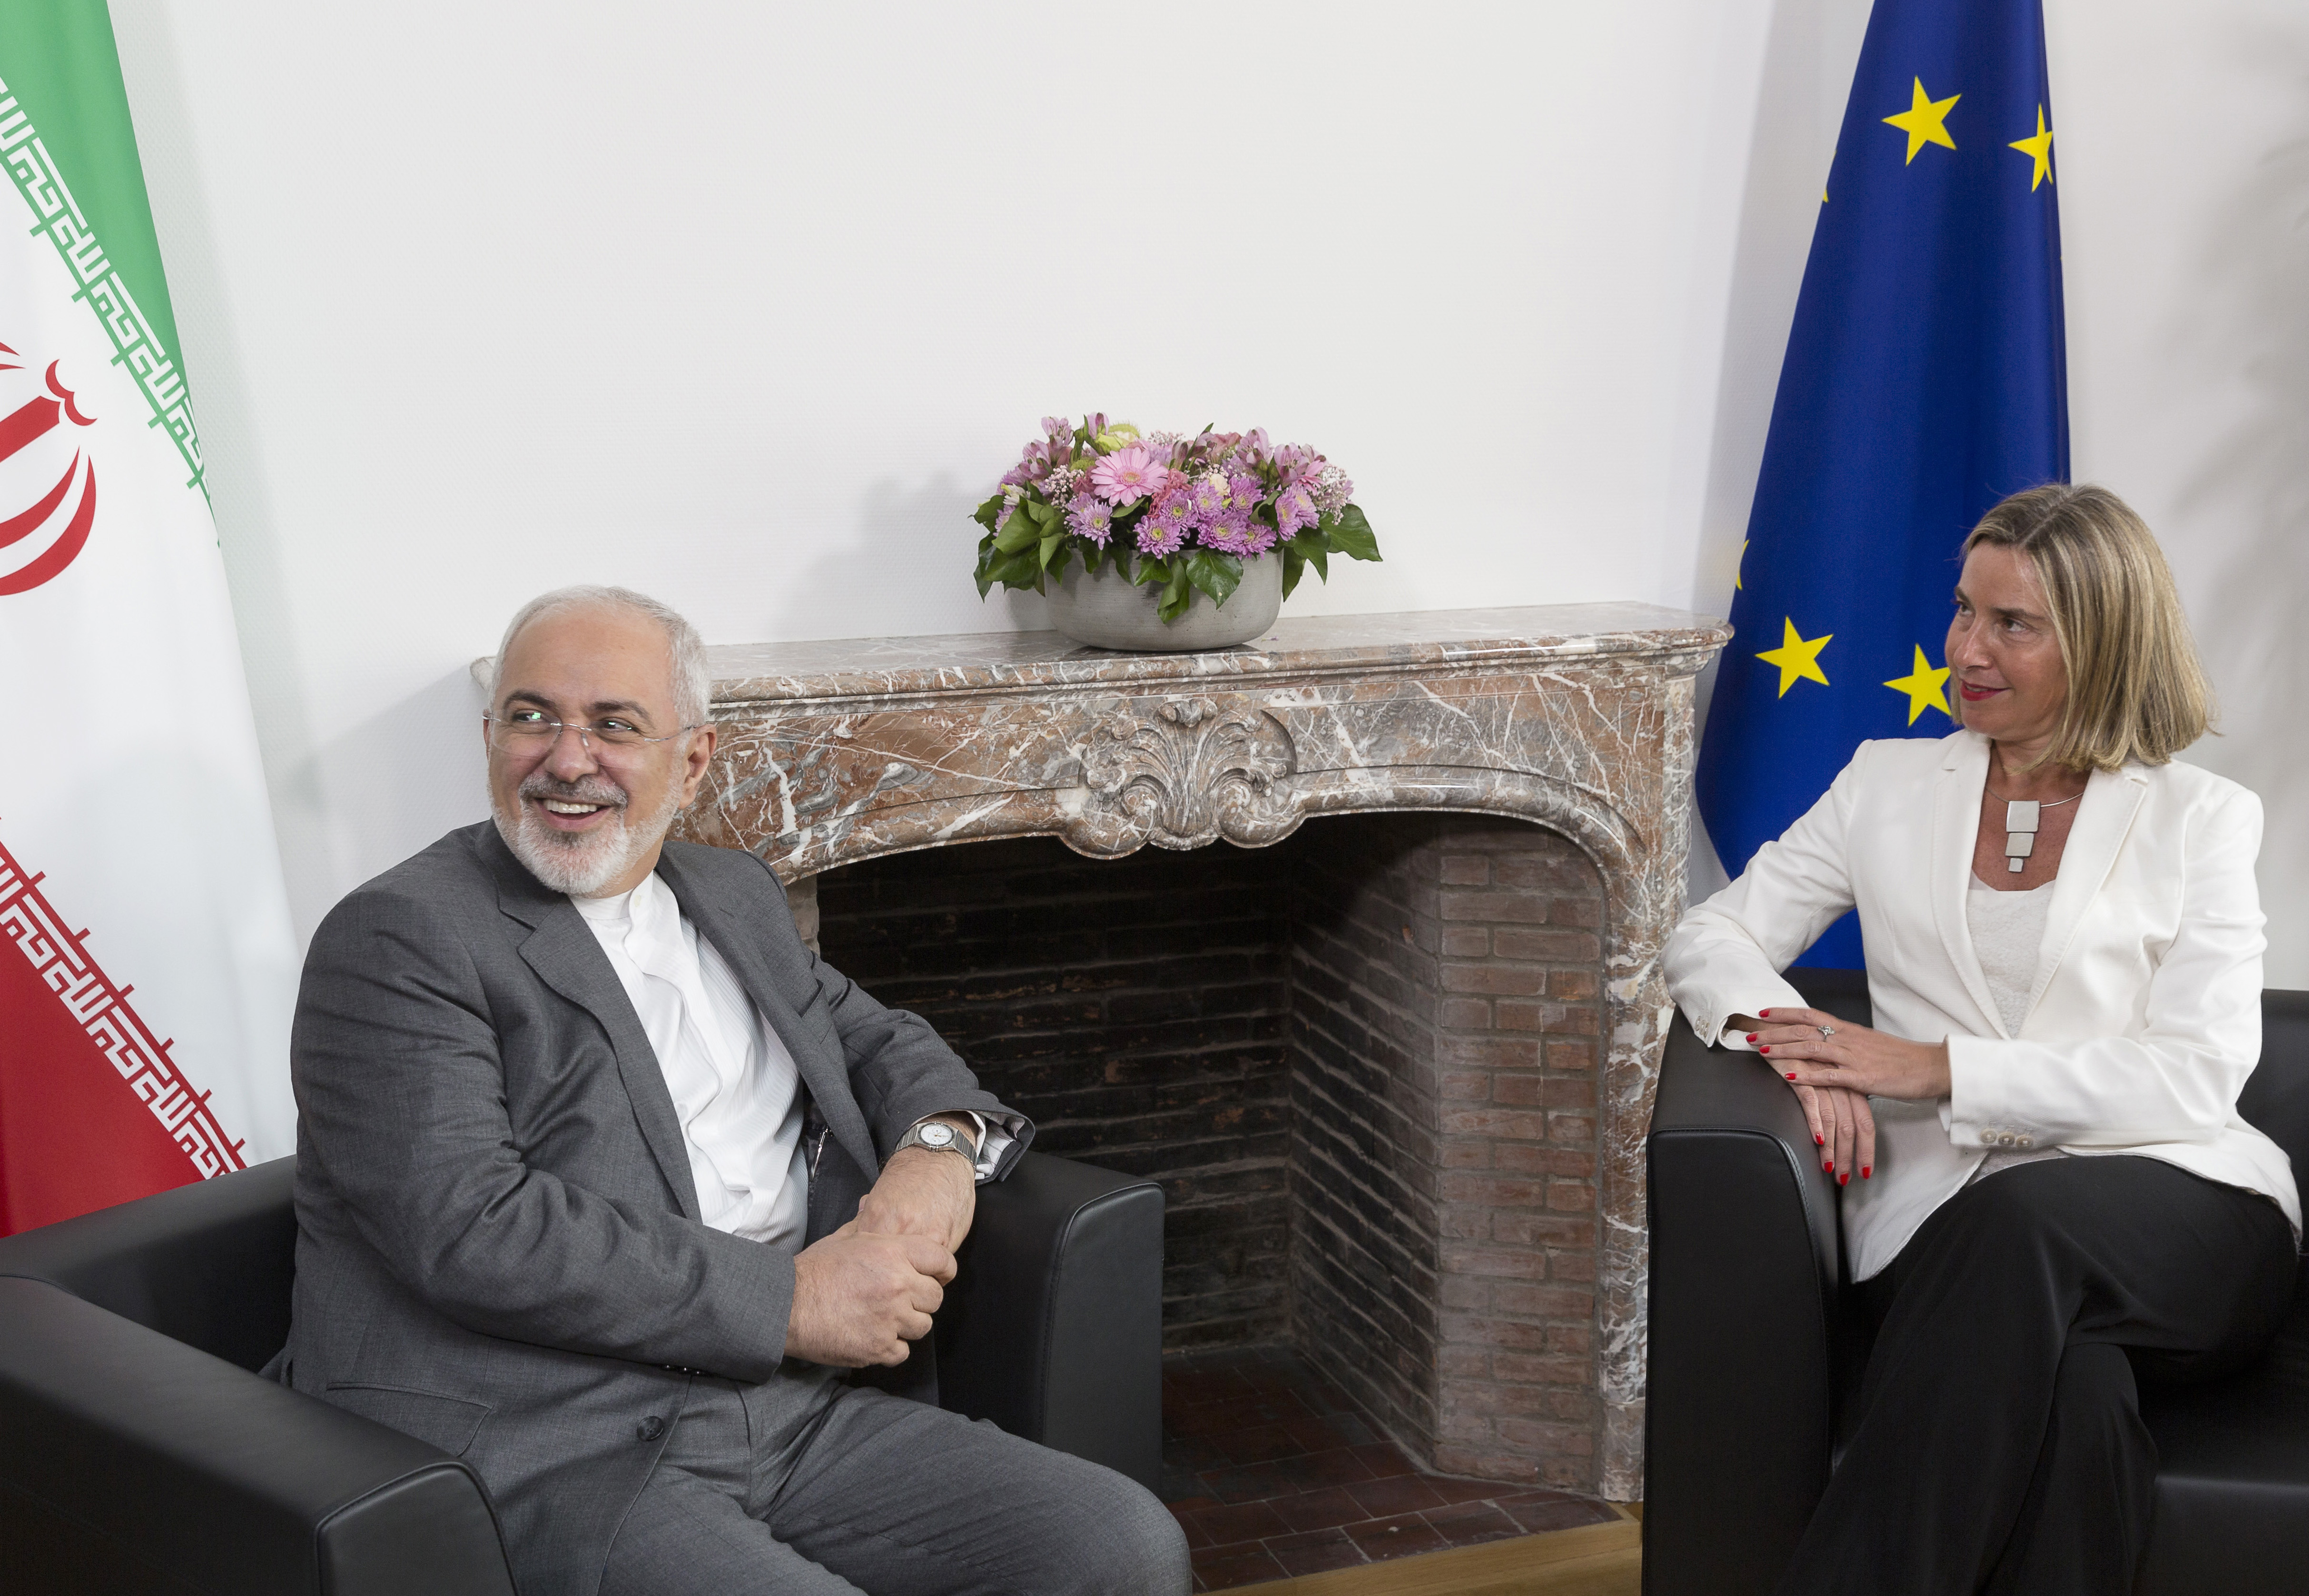 Iranian Foreign Minister Mohammad Javad Zarif (L) meets with European Union Foreign Policy Chief Federica Mogherini, to discuss Iran's nuclear deal, on May 15, 2018 at the EU headquarters in Brussels. - Iran's foreign minister landed in Brussels on May 14 on the final leg of a global tour rallying diplomatic support for the country's nuclear deal after the US President Donald Trump administration's abrupt withdrawal. Mohammad Javad Zarif will meet with his counterparts from Britain, France and Germany -- the three European nations involved in the landmark deal who are incensed by Washington's abandonment of the pact. (Photo by Thierry Monasse / POOL / AFP) (Photo credit should read THIERRY MONASSE/AFP/Getty Images)